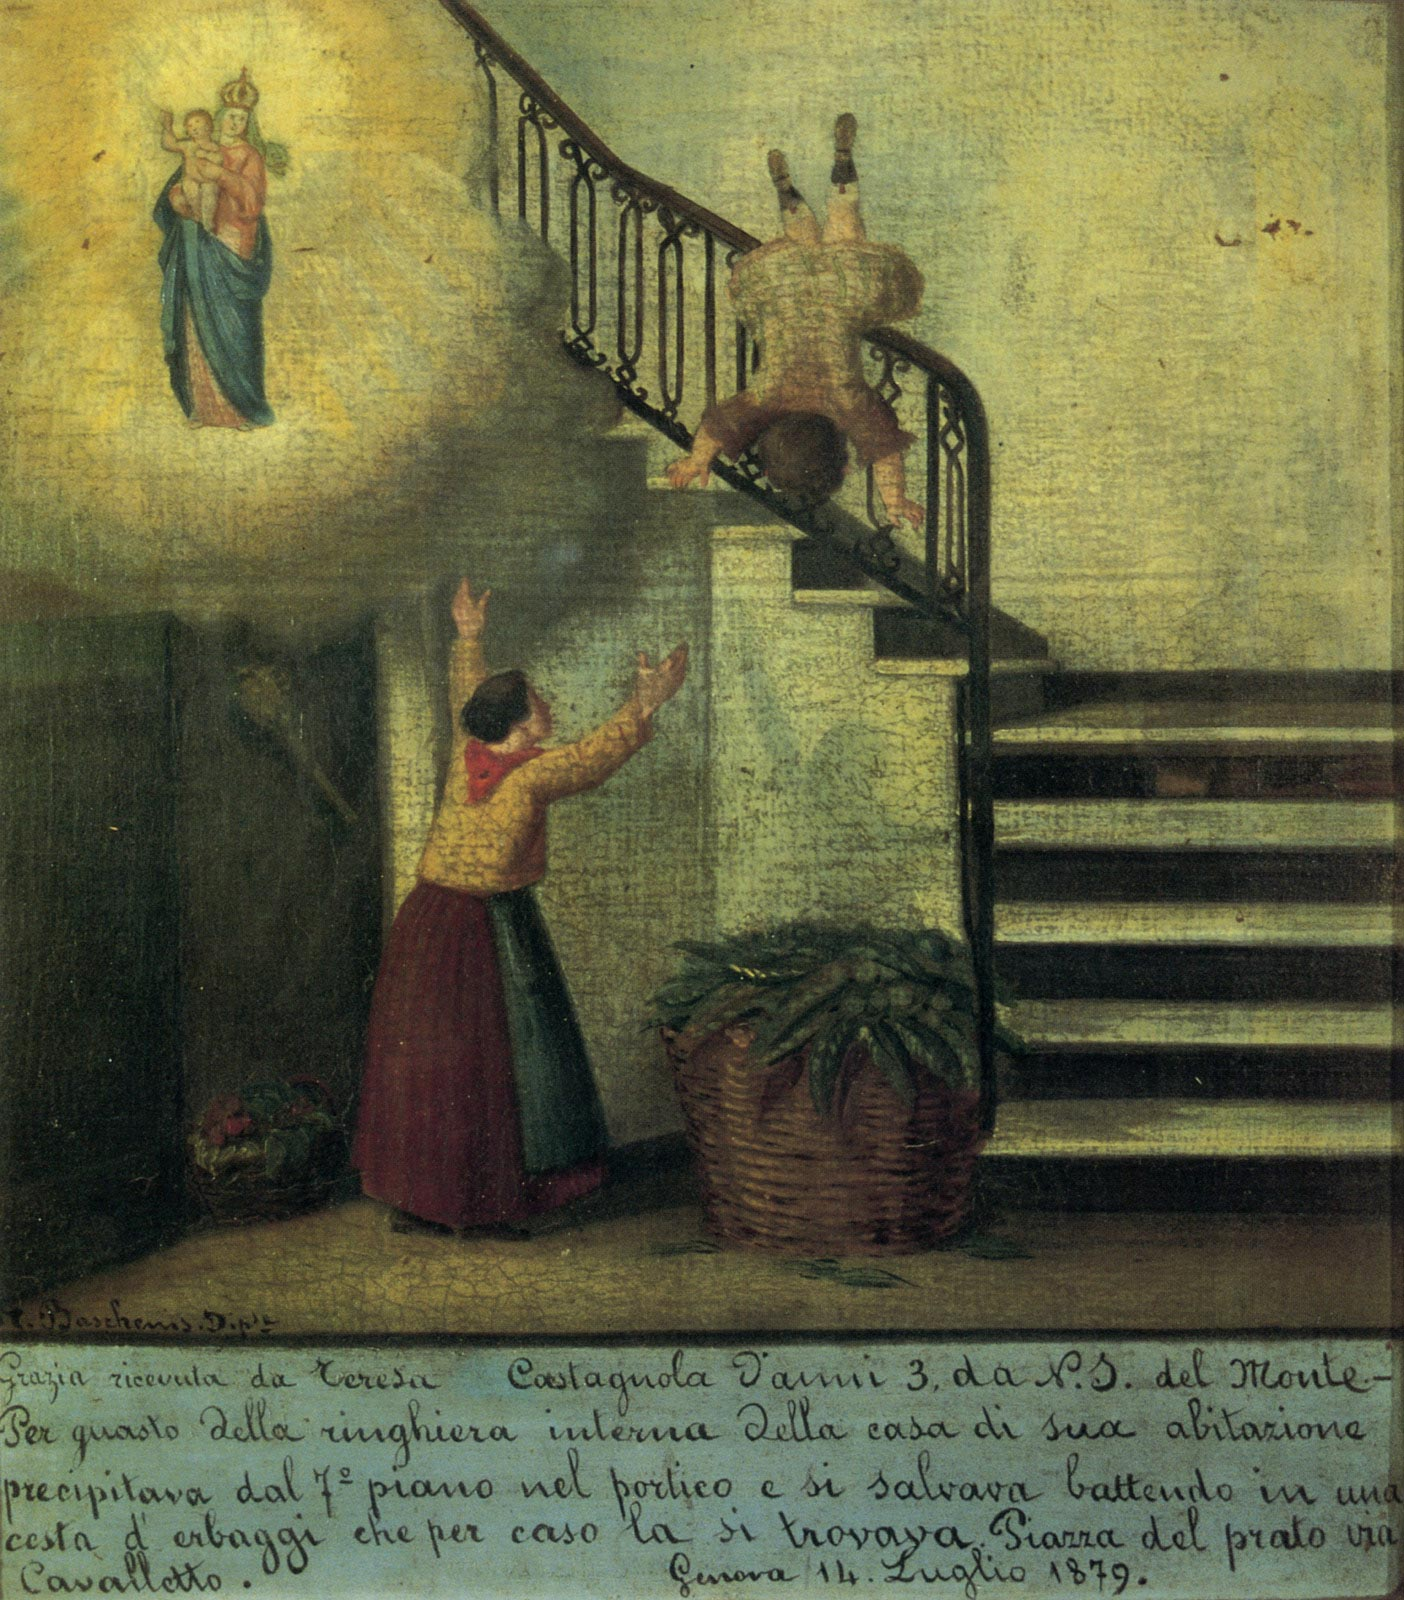 ex-voto-11-a-little-girl-falls-from-seventh-floor-july-14-1879